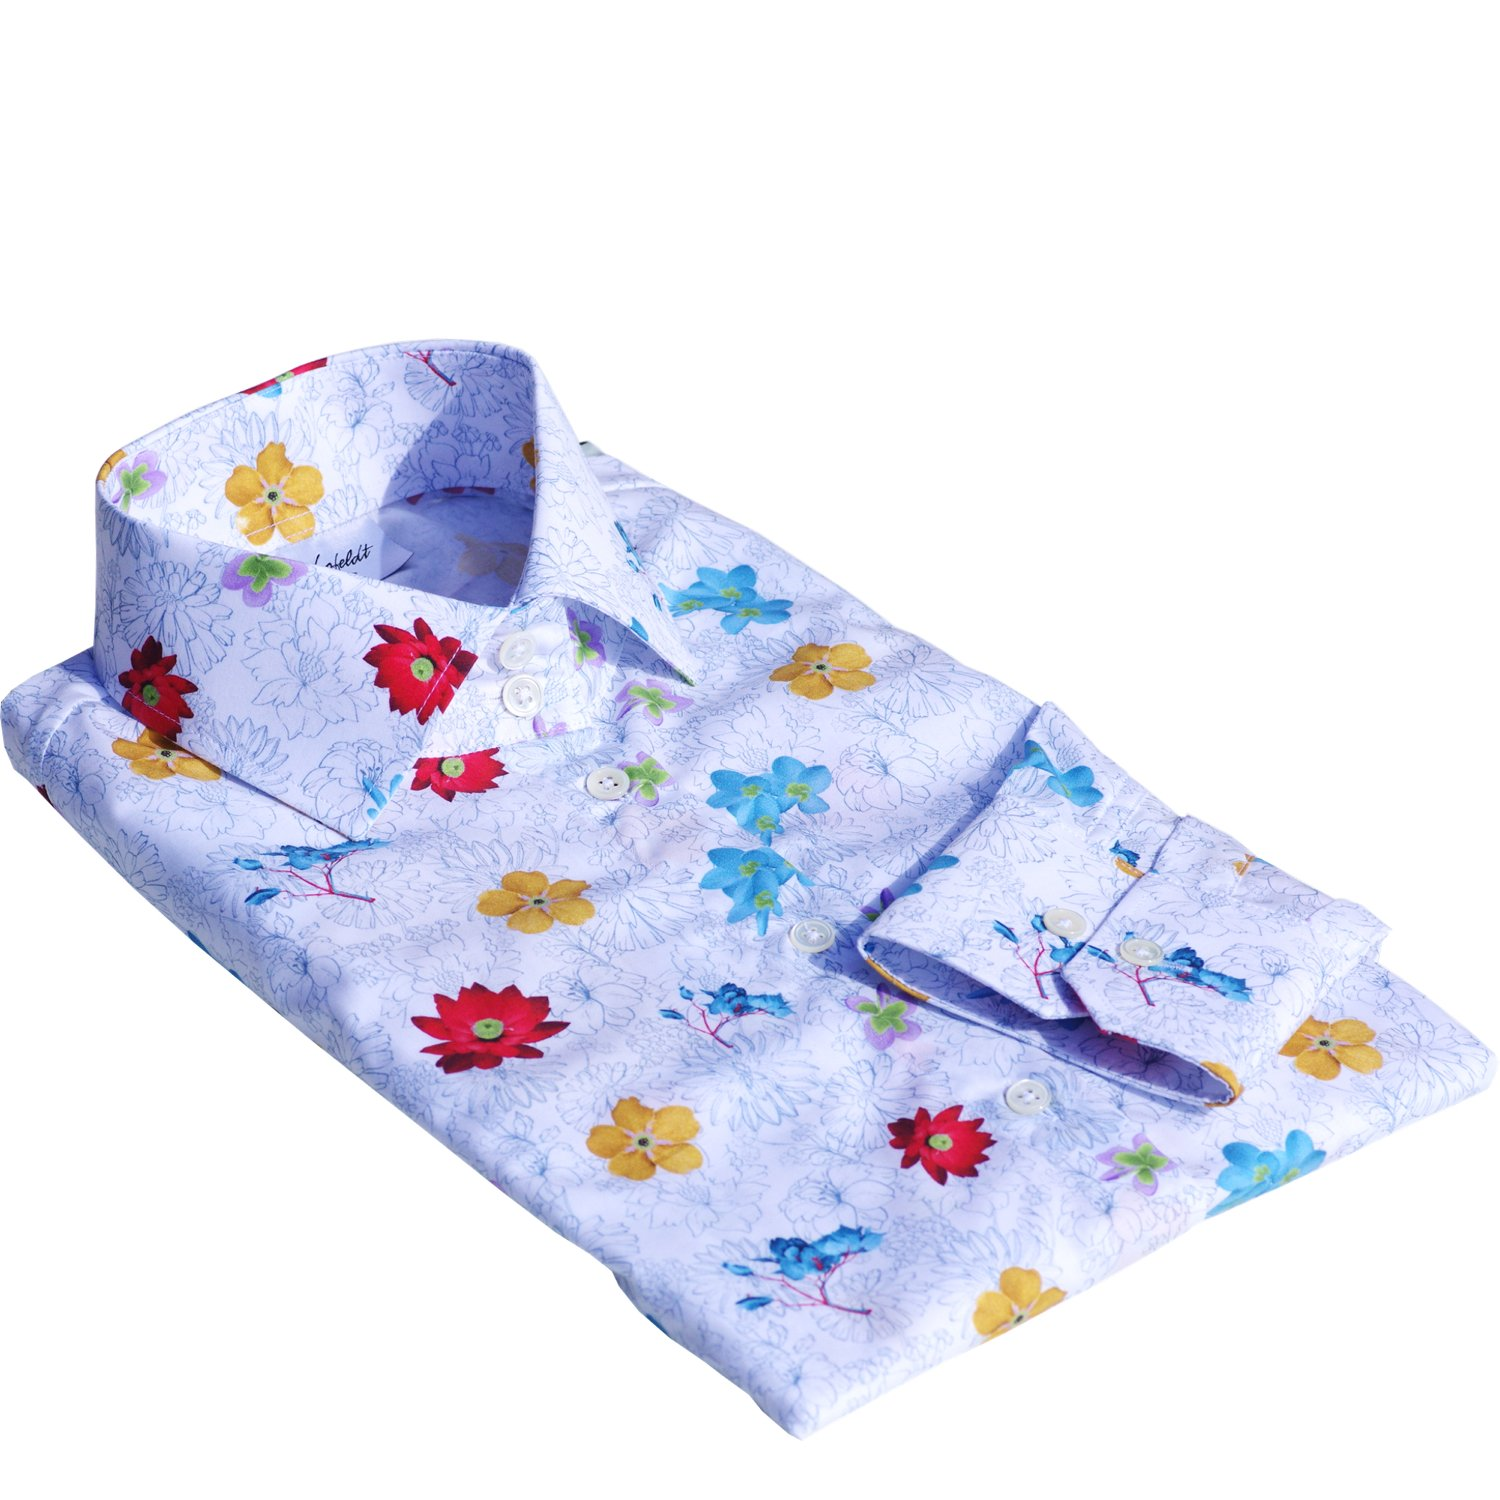 SEVILLE dress shirt with flowers (last sizes: 34, 44, 46)